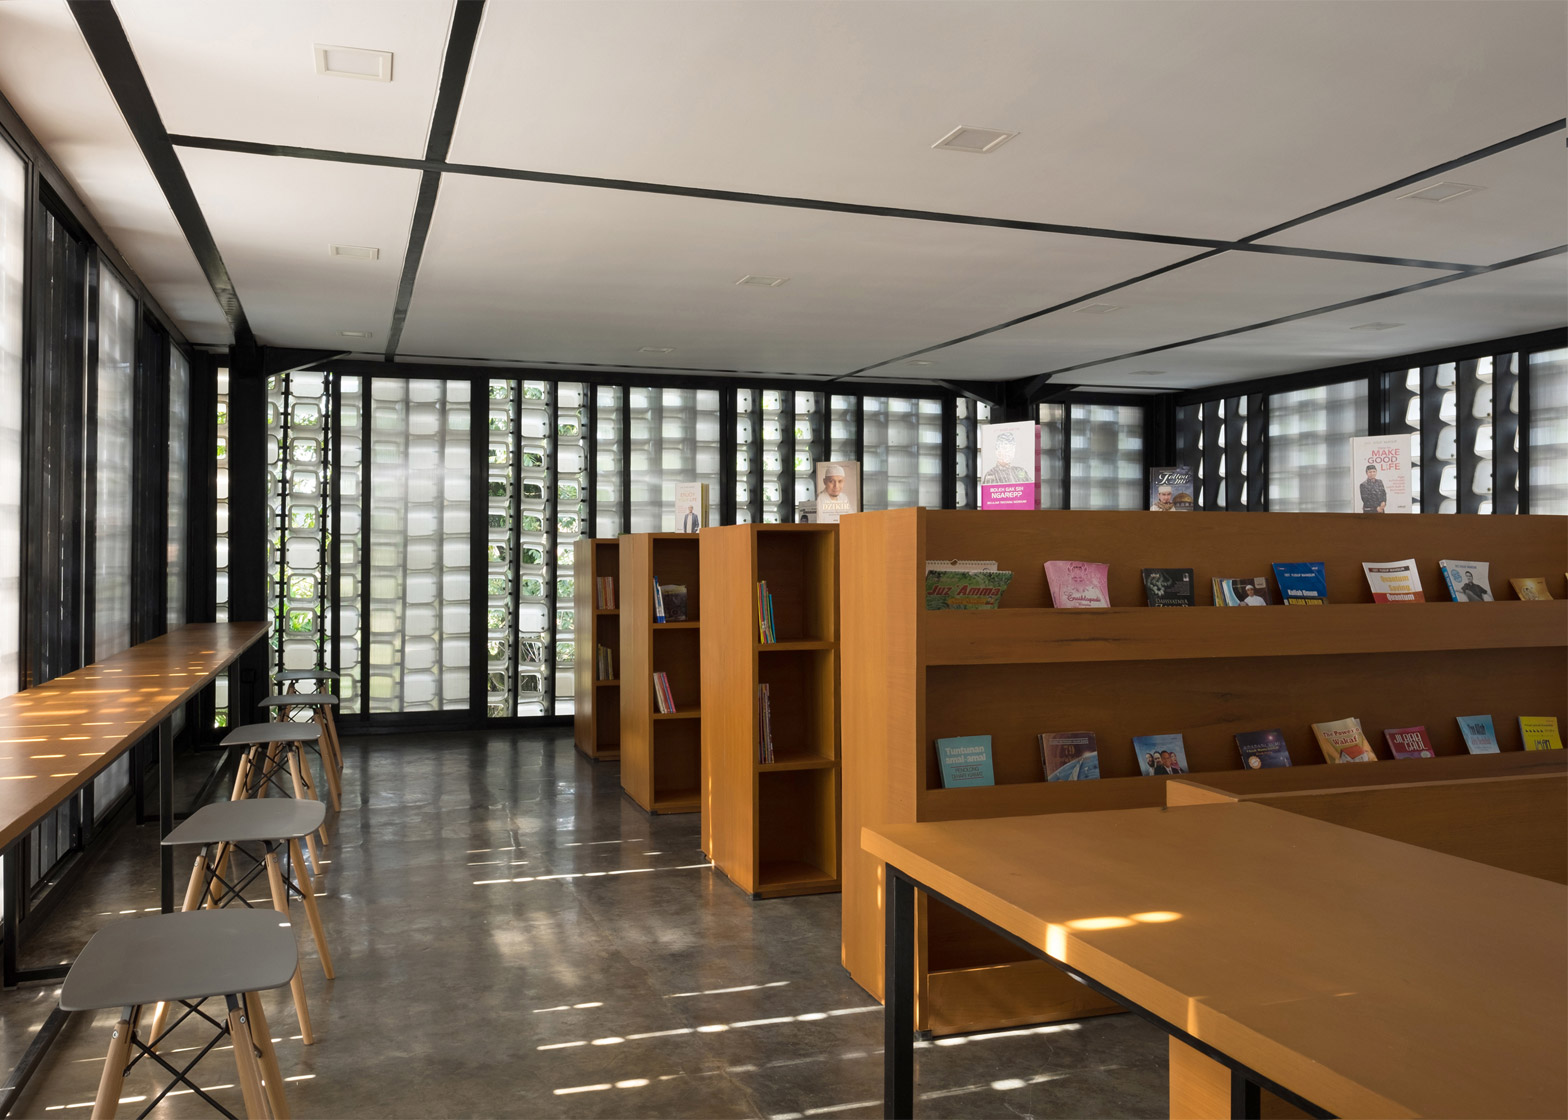 Recycled Ice Cream Tubs Cover Walls Of Microlibrary By Shau